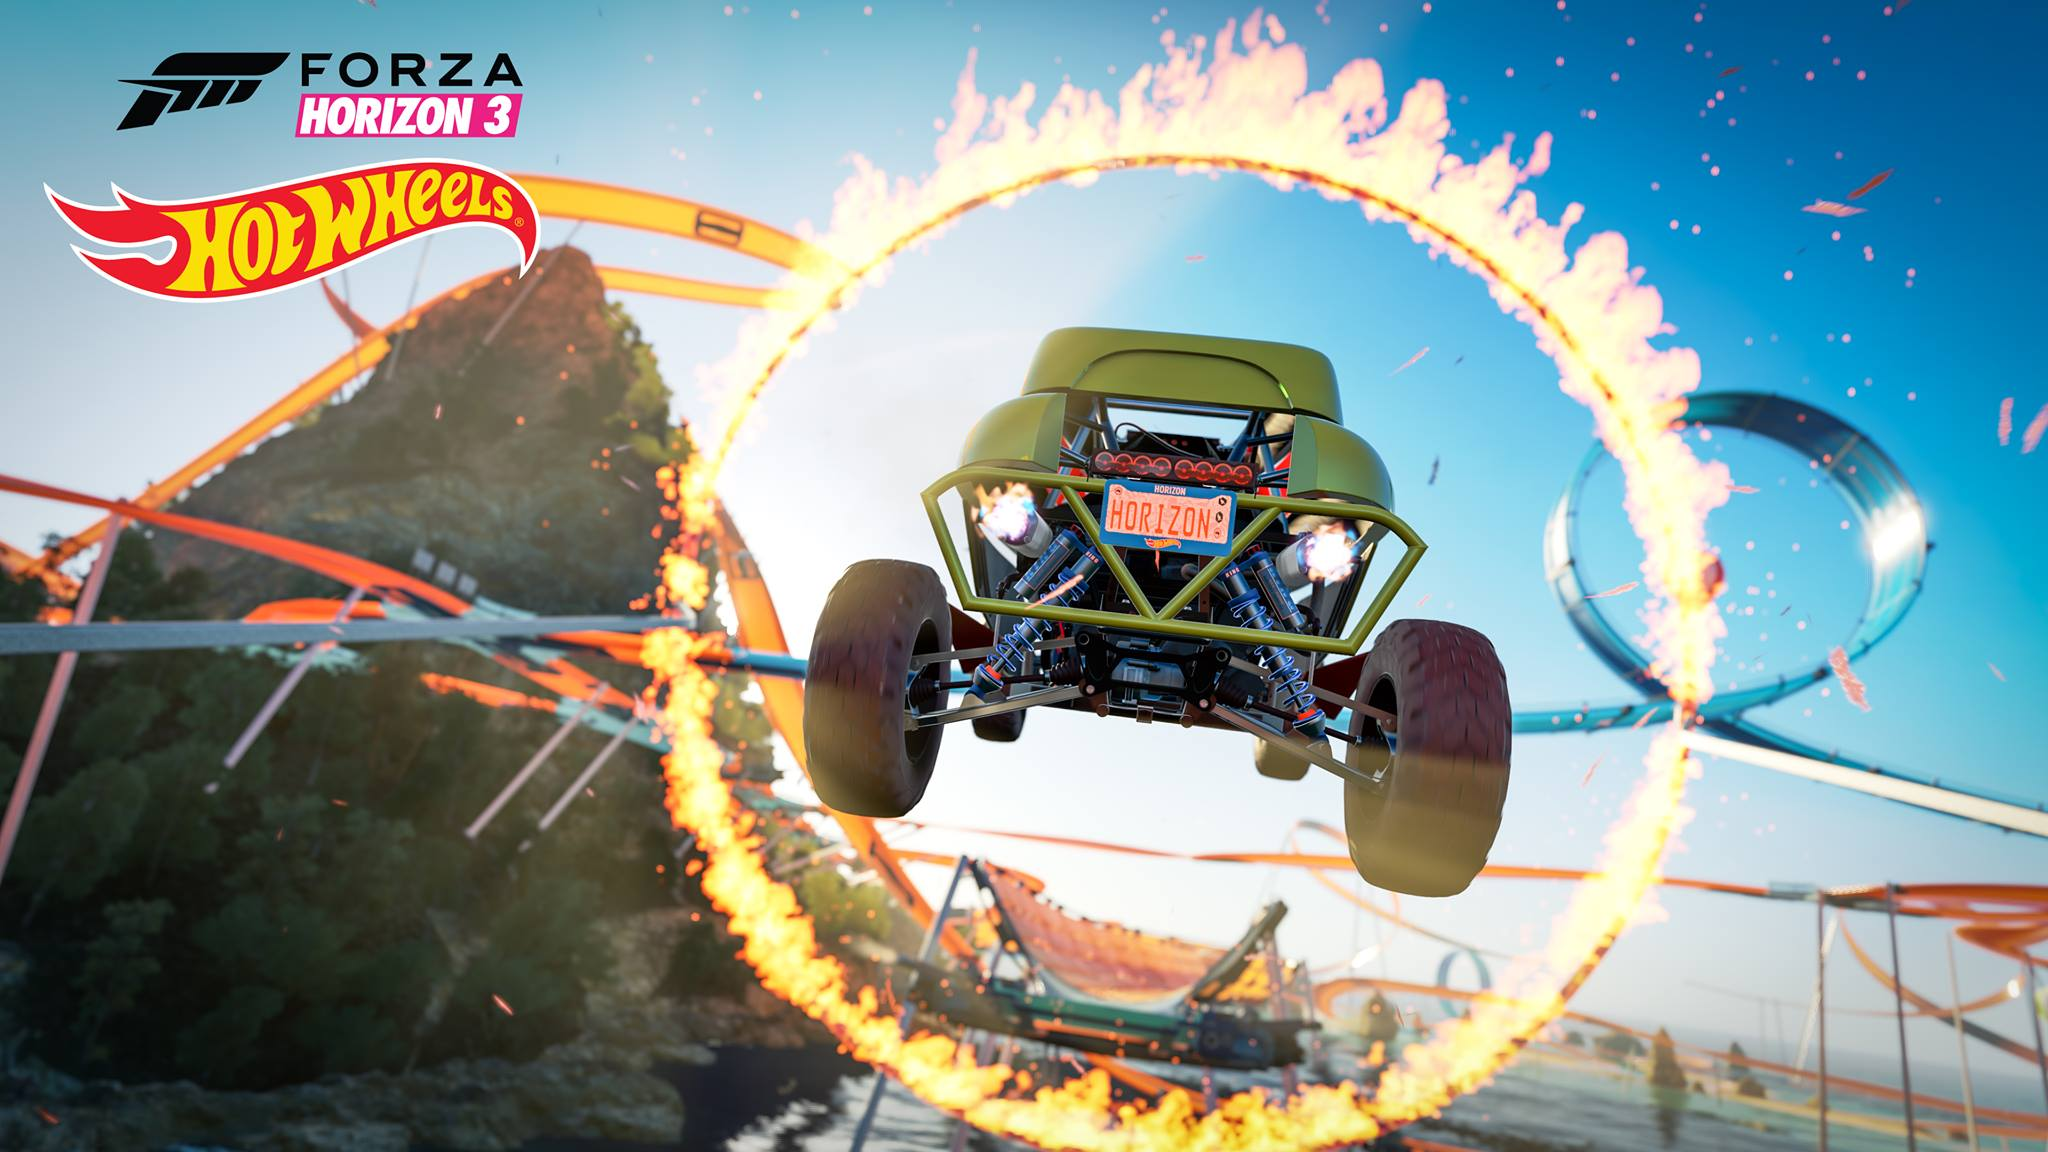 Forza Horizon 3 Hot Wheels Expansion revealed ahead of 9th May release